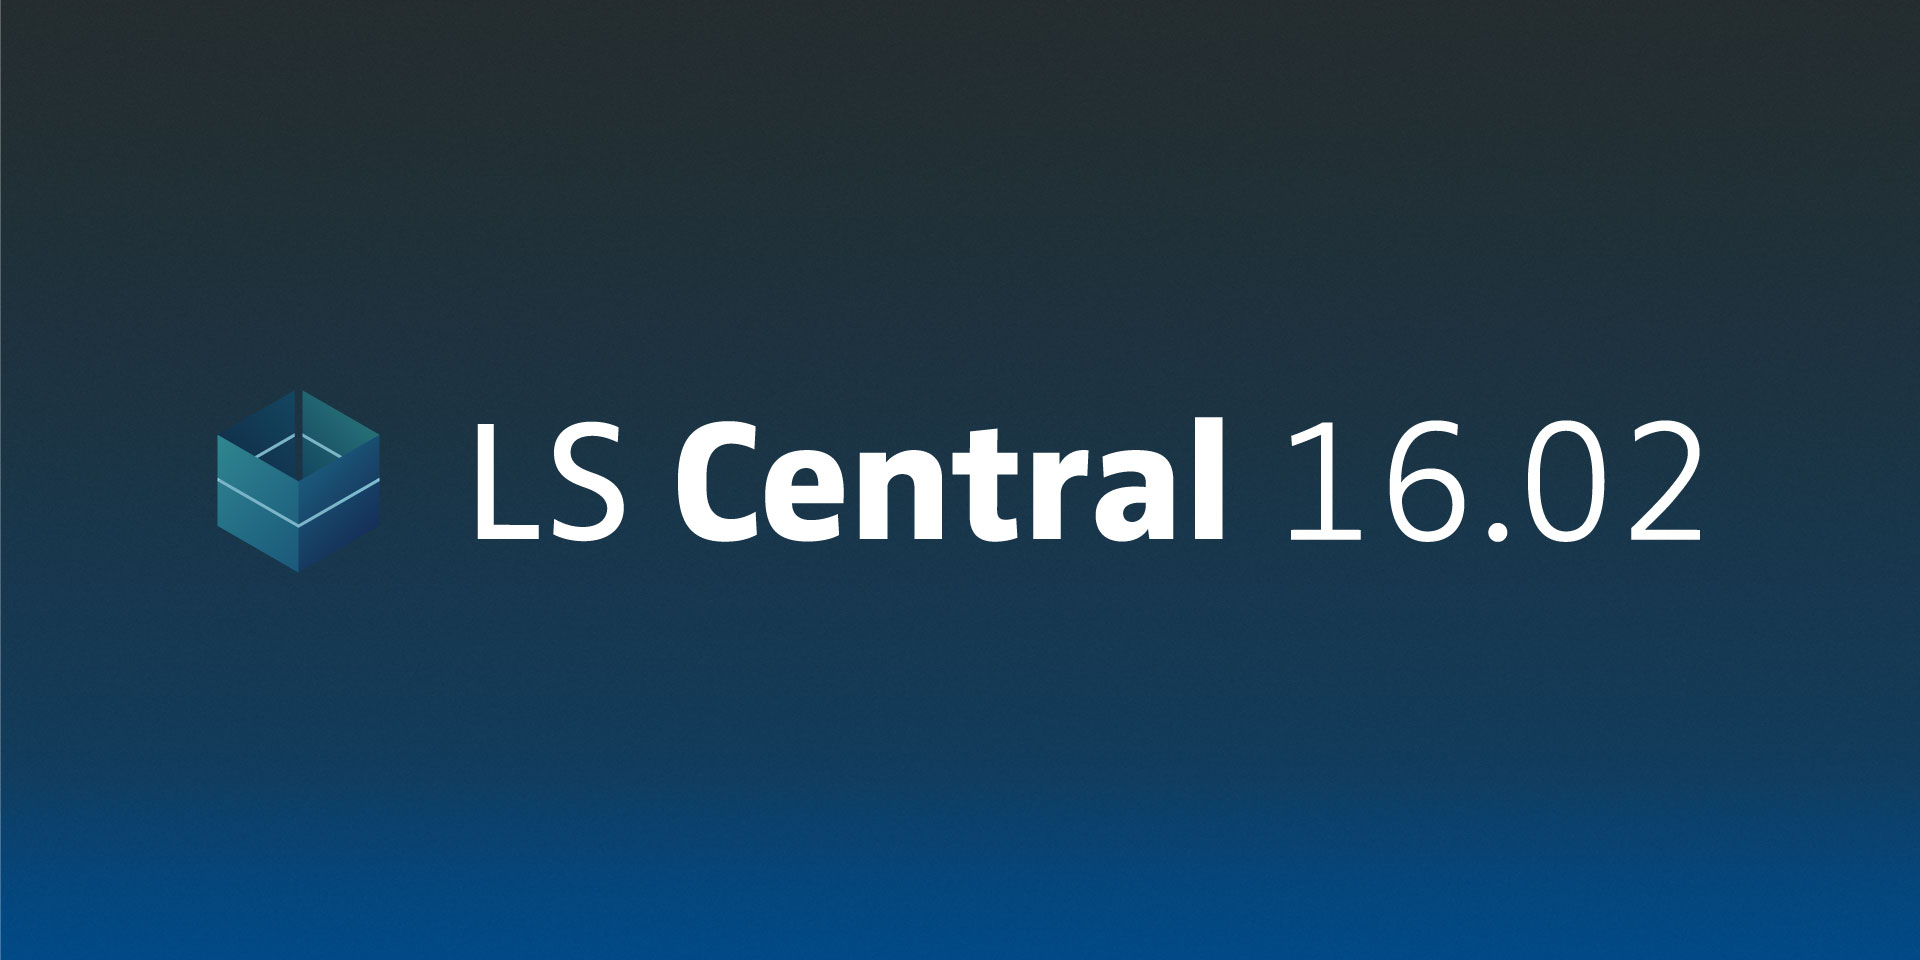 LS Central 16.2: improved Store Capacity Management, redesigned Replenishment Journals